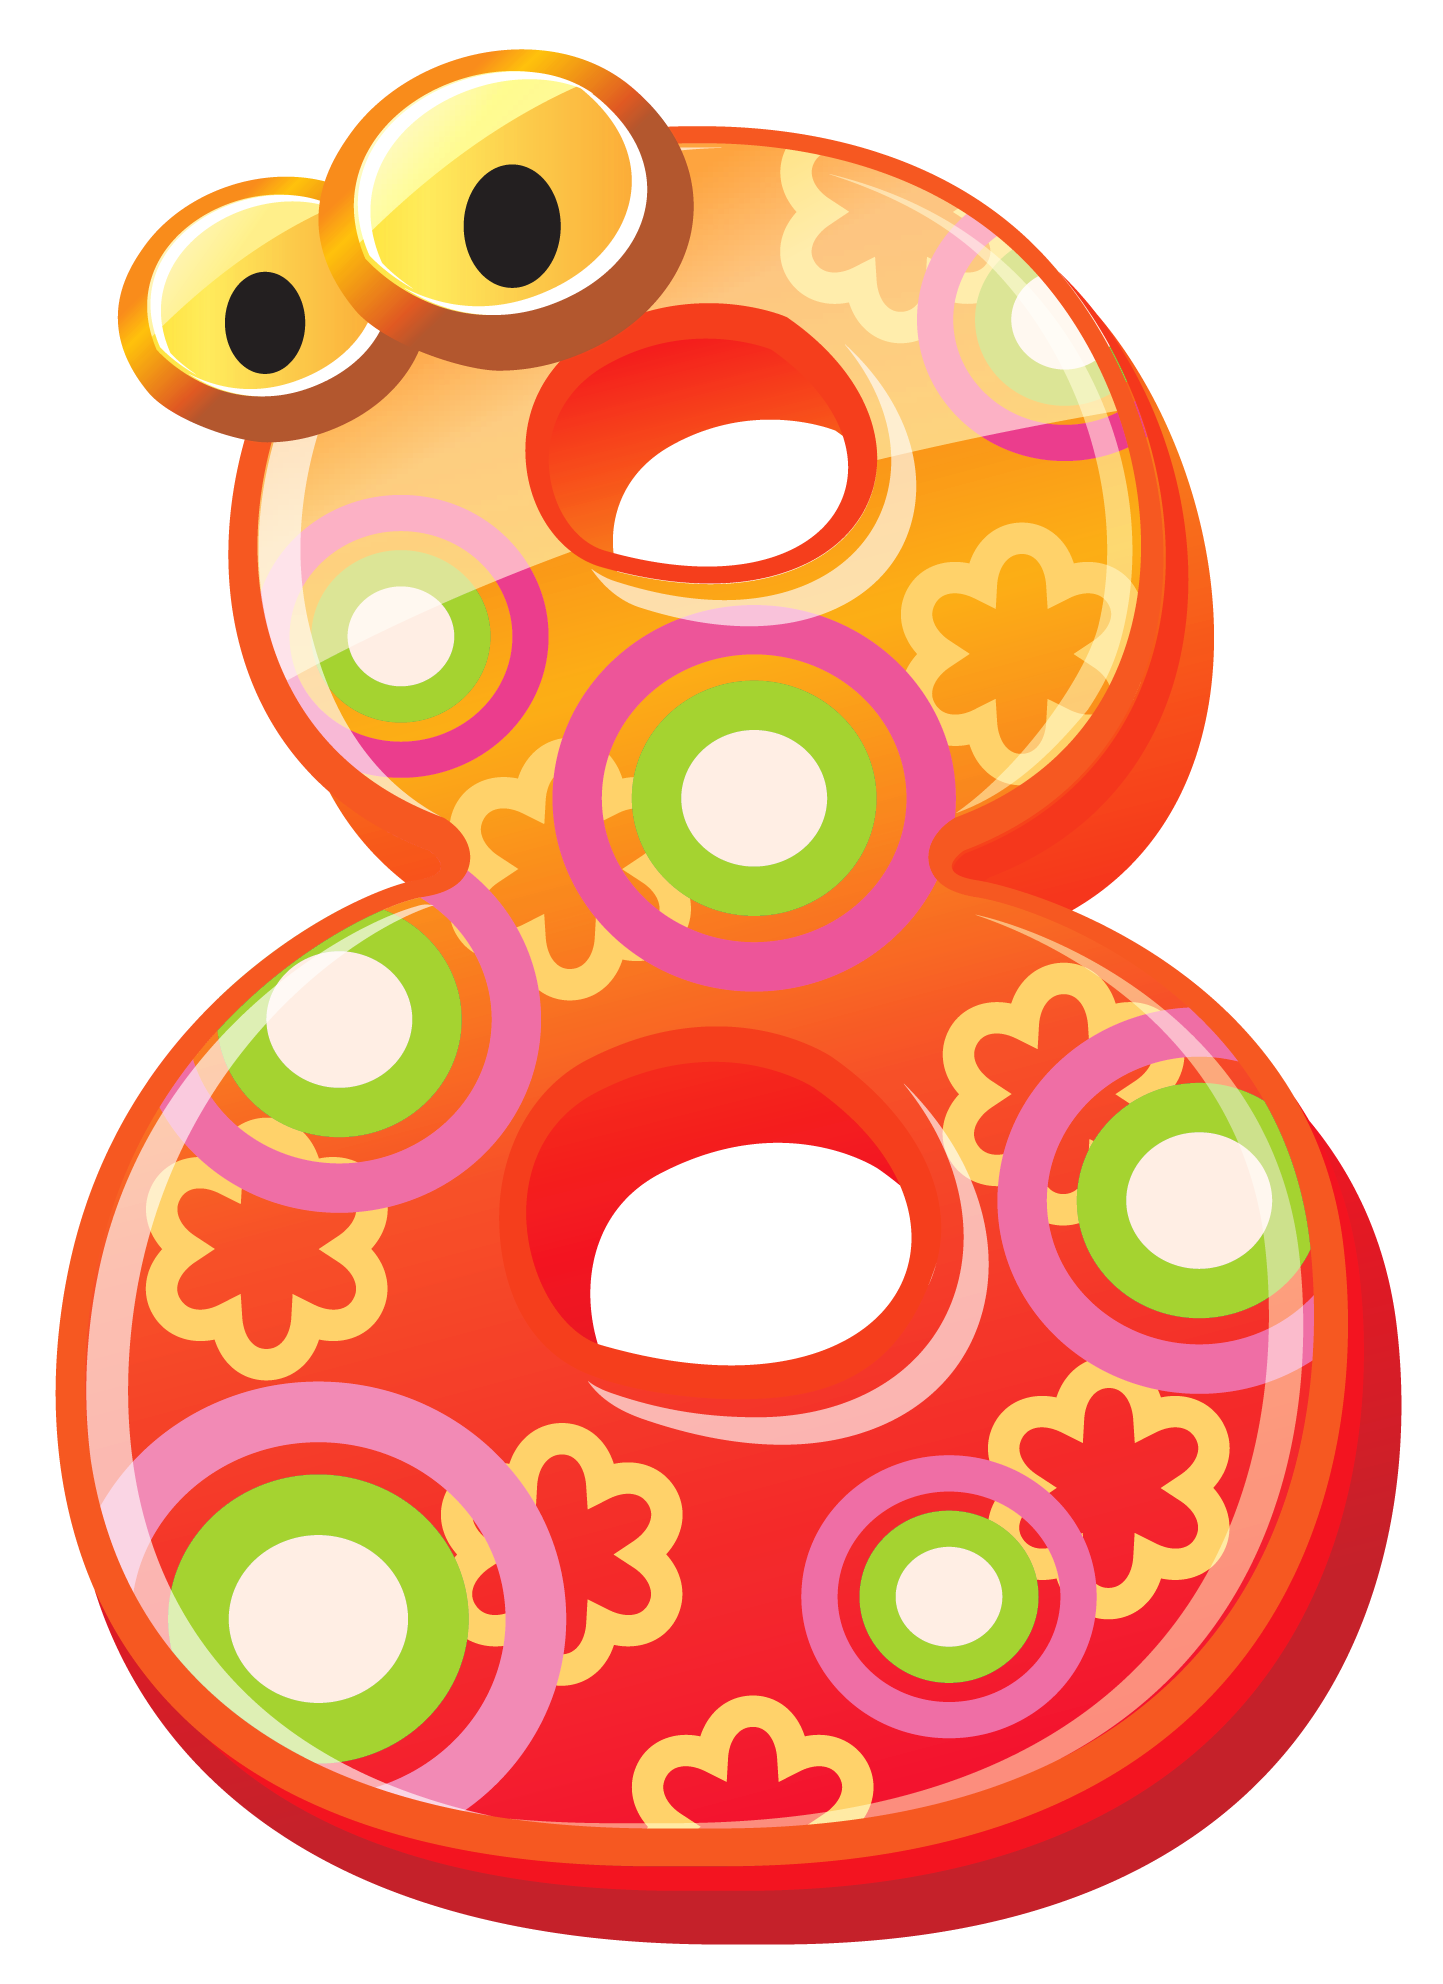 Number eight png image. Decorative clipart cute